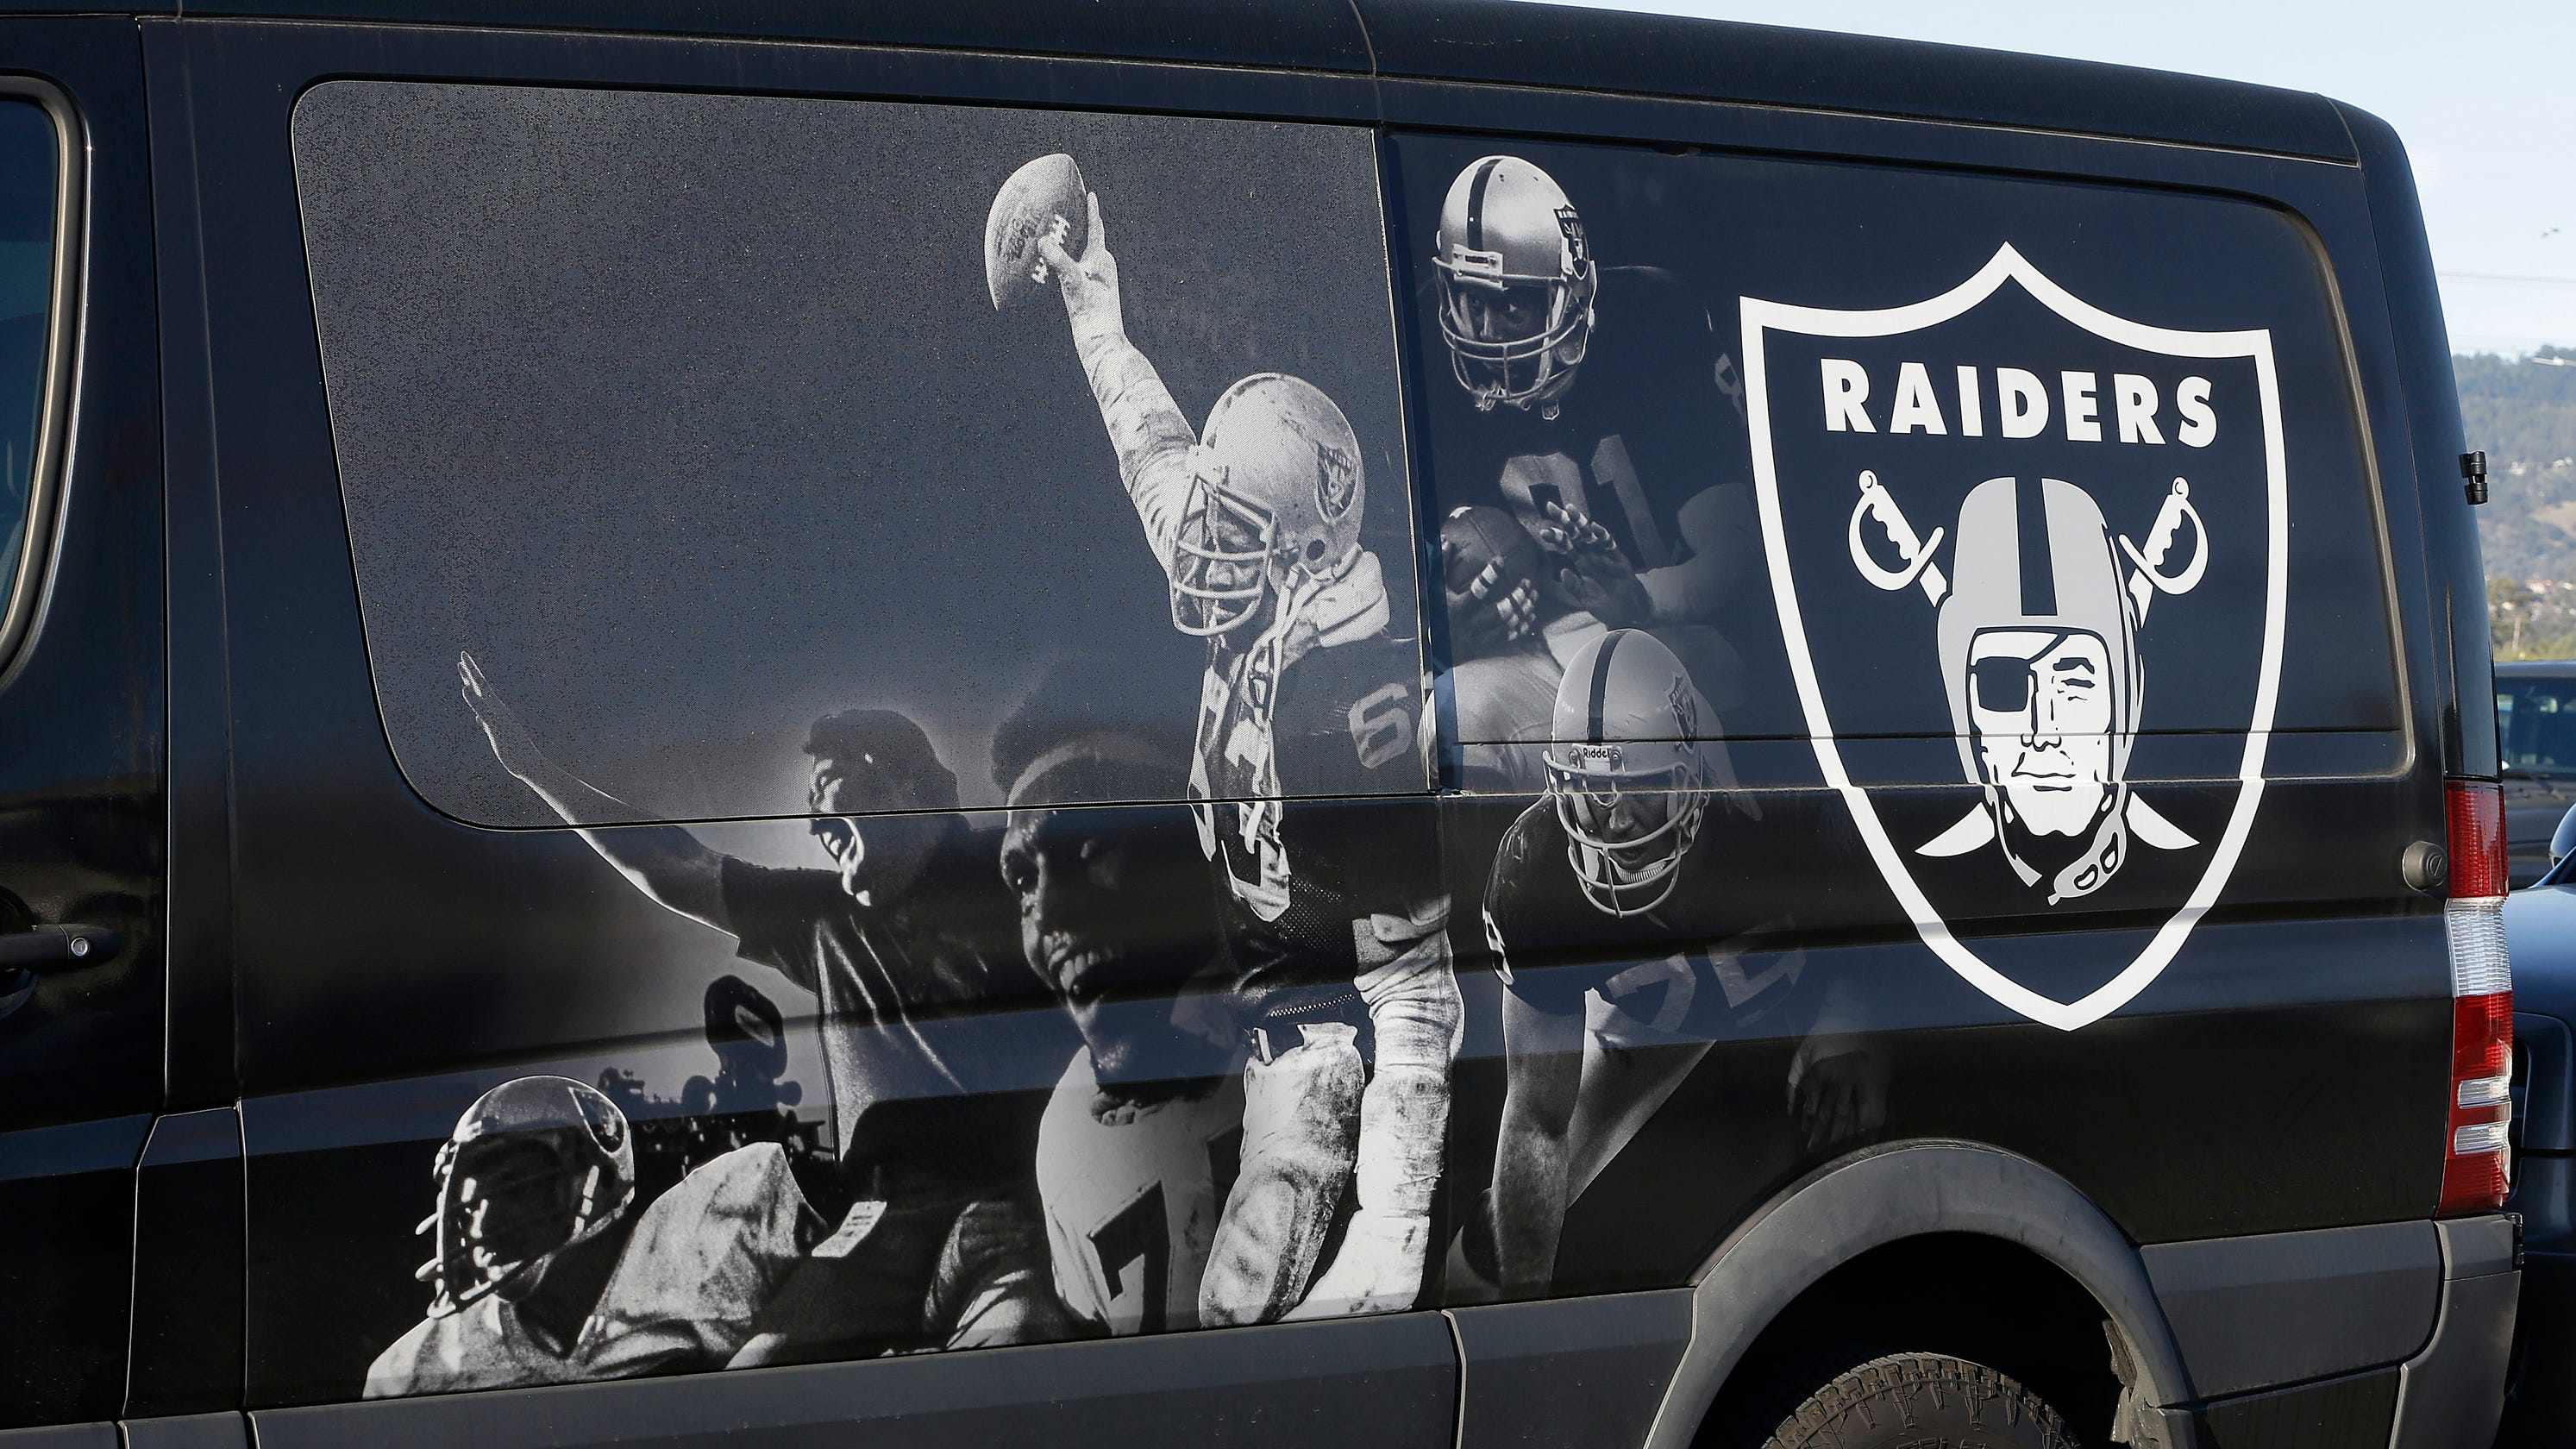 Could Oakland Raiders play at Mackay Stadium before move to Las Vegas?